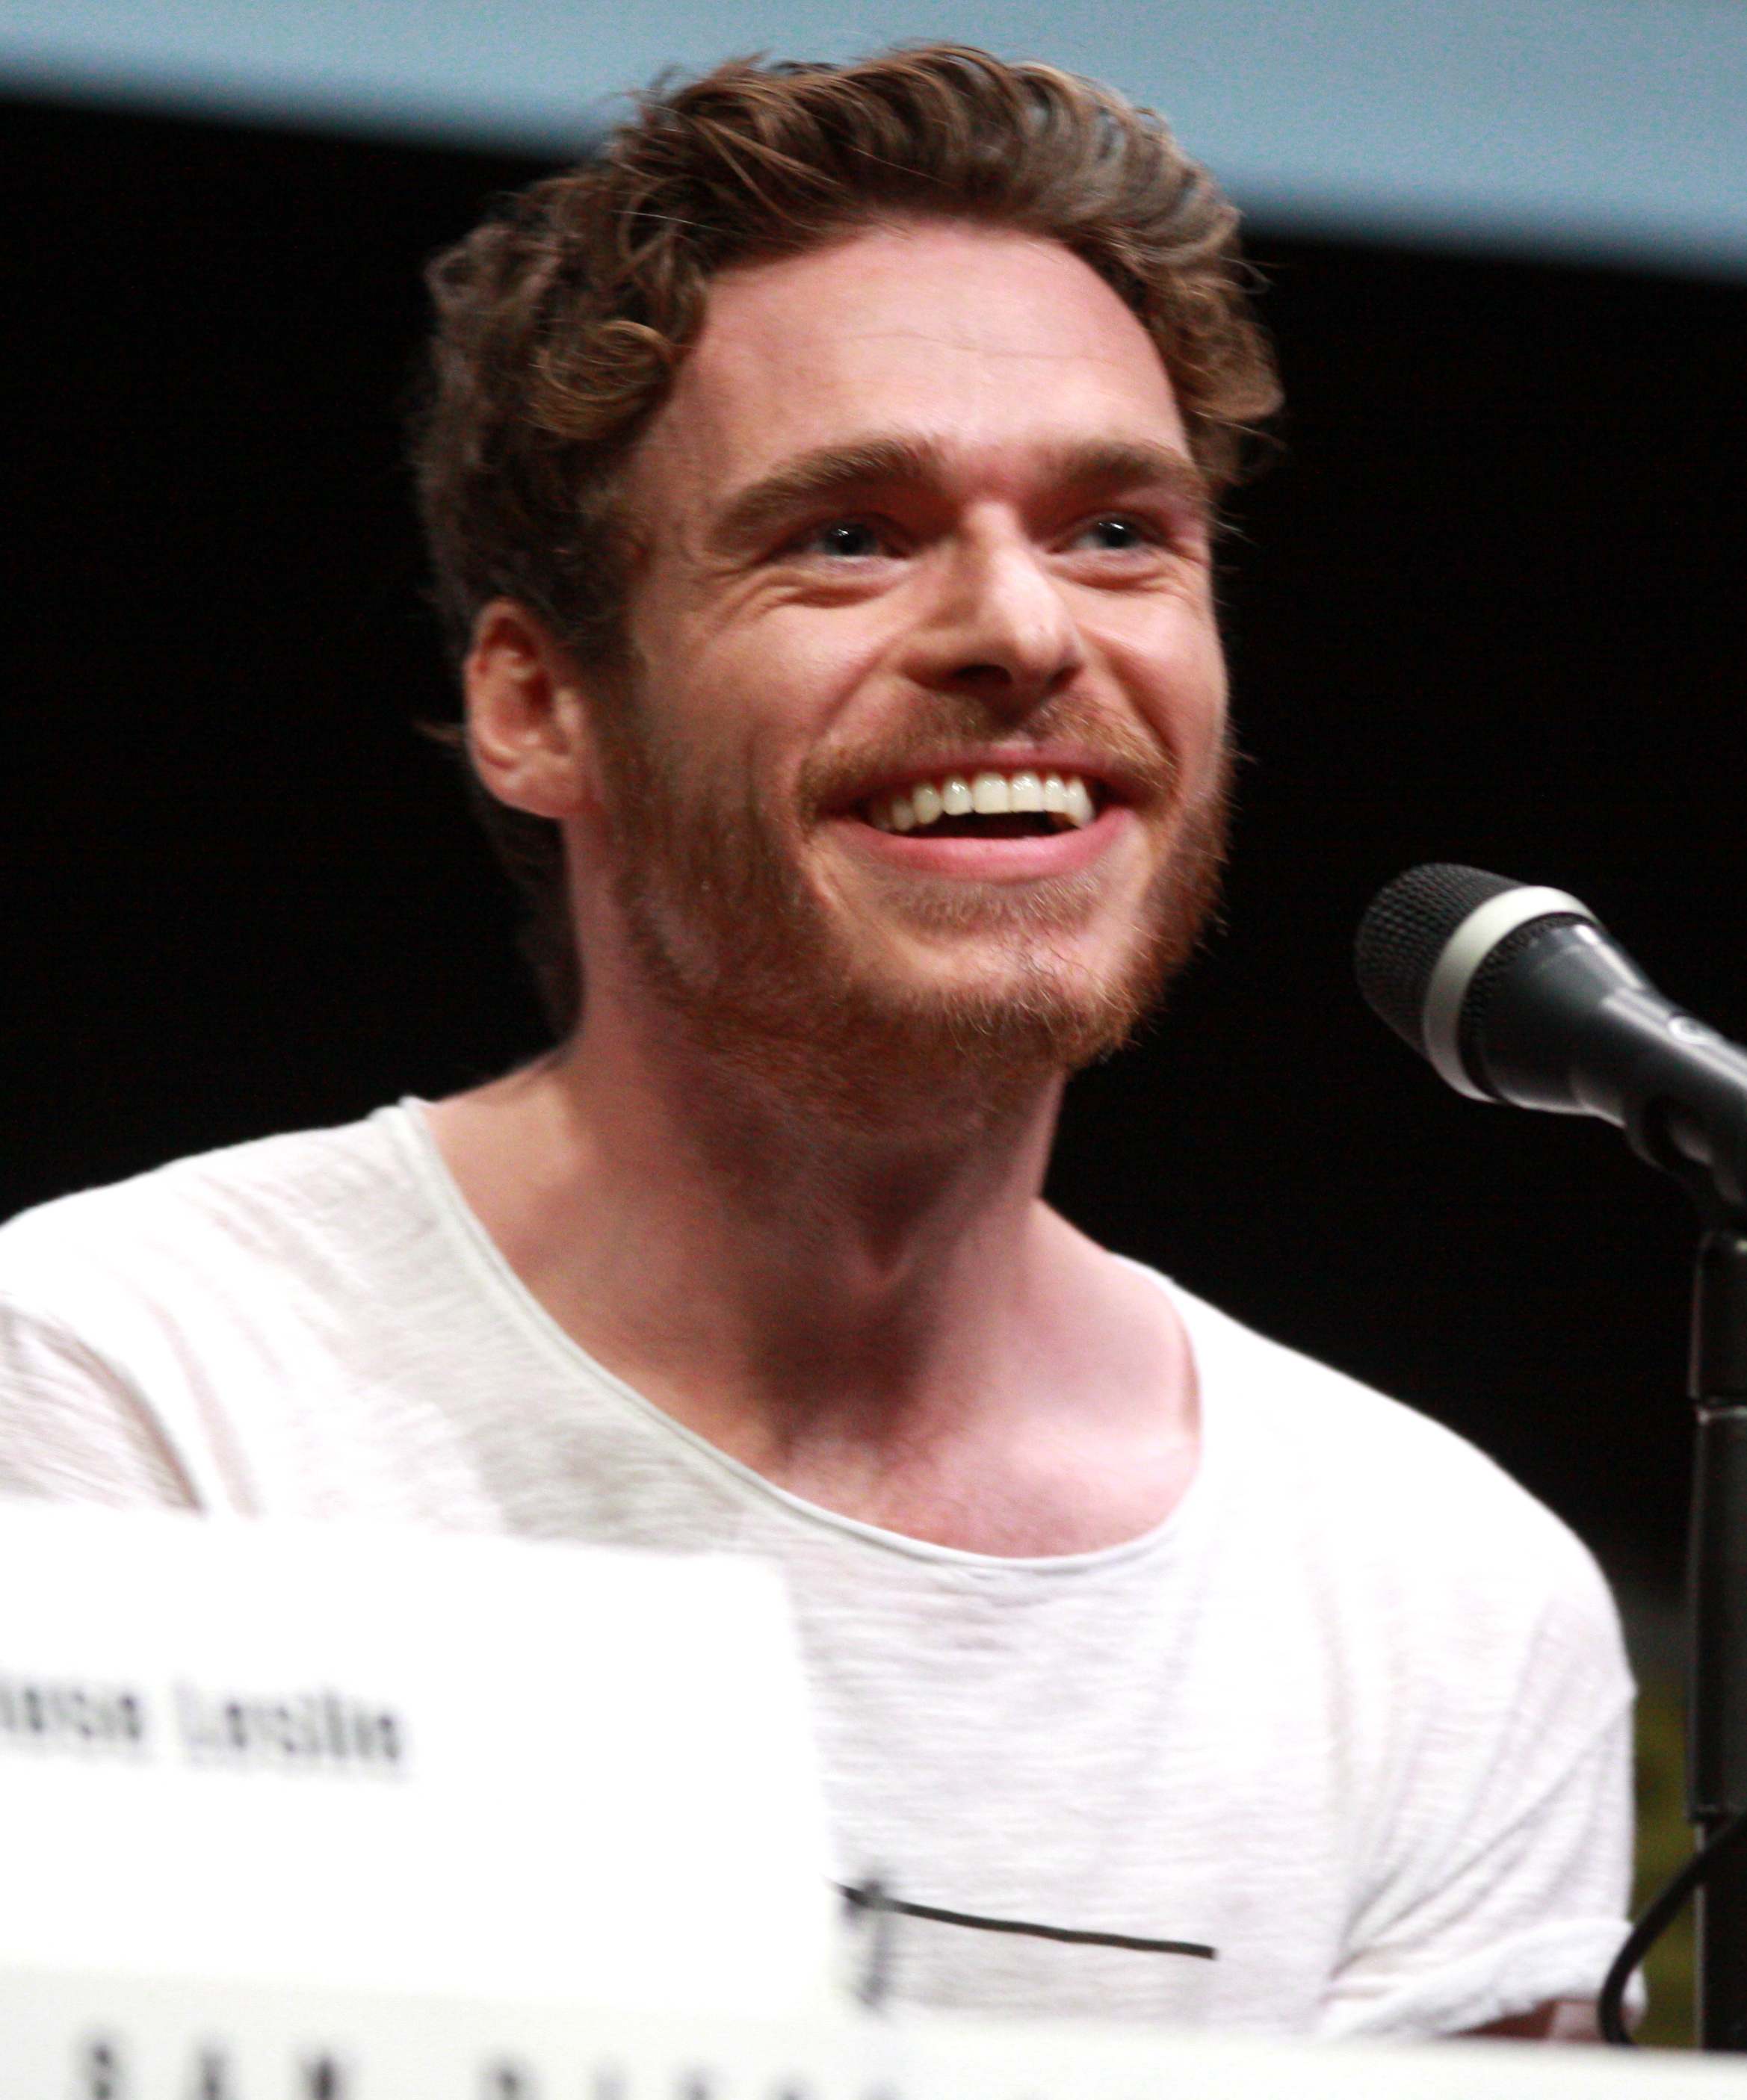 Description Richard Madden by Gage Skidmore jpgRichard Madden